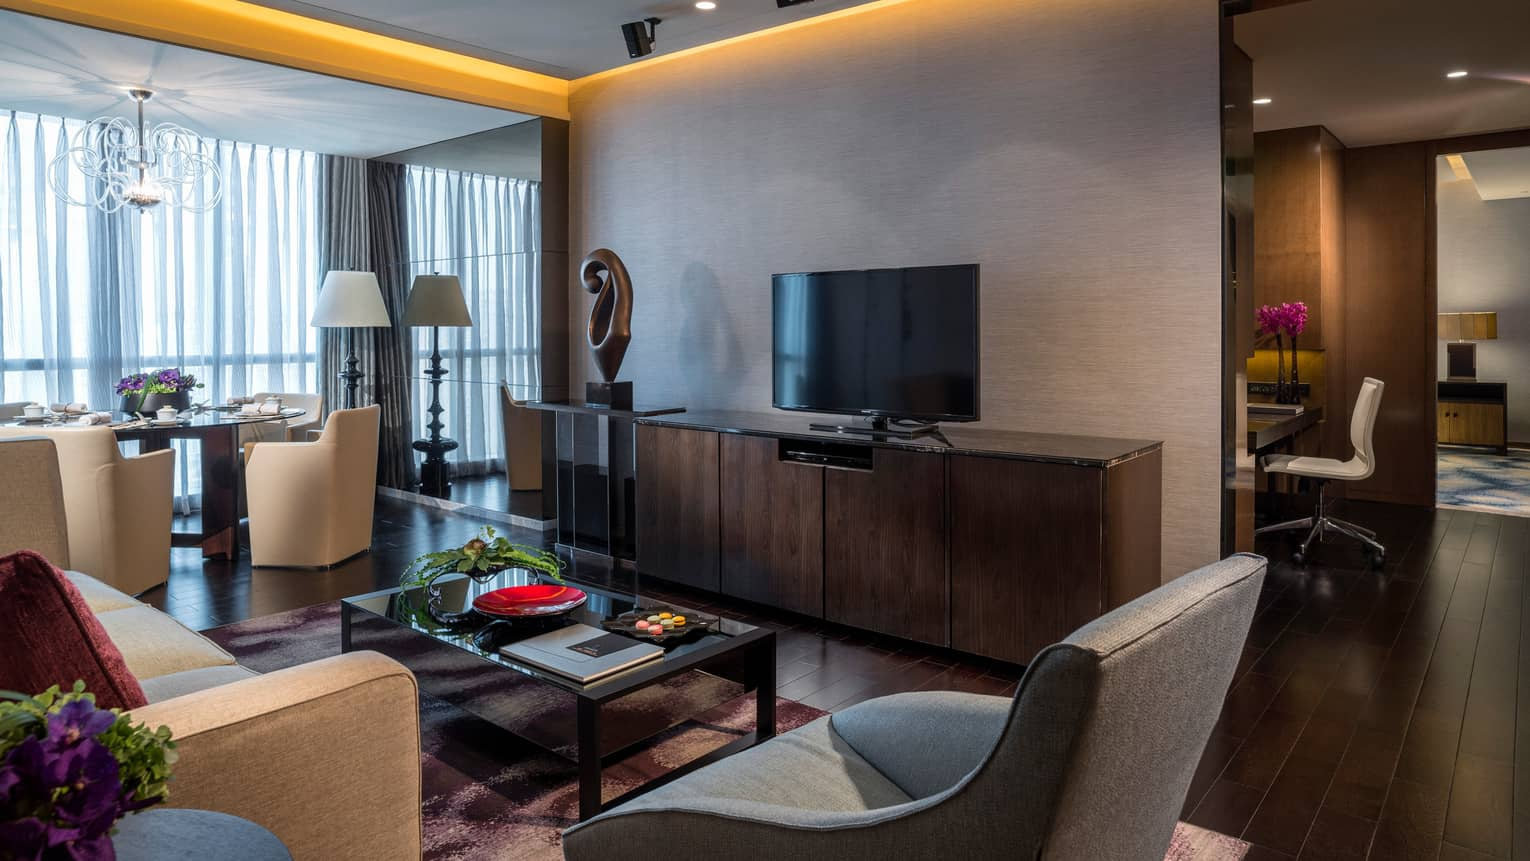 Ambassador Suite modern seating area, dresser and TV, sculpture, dining table near window